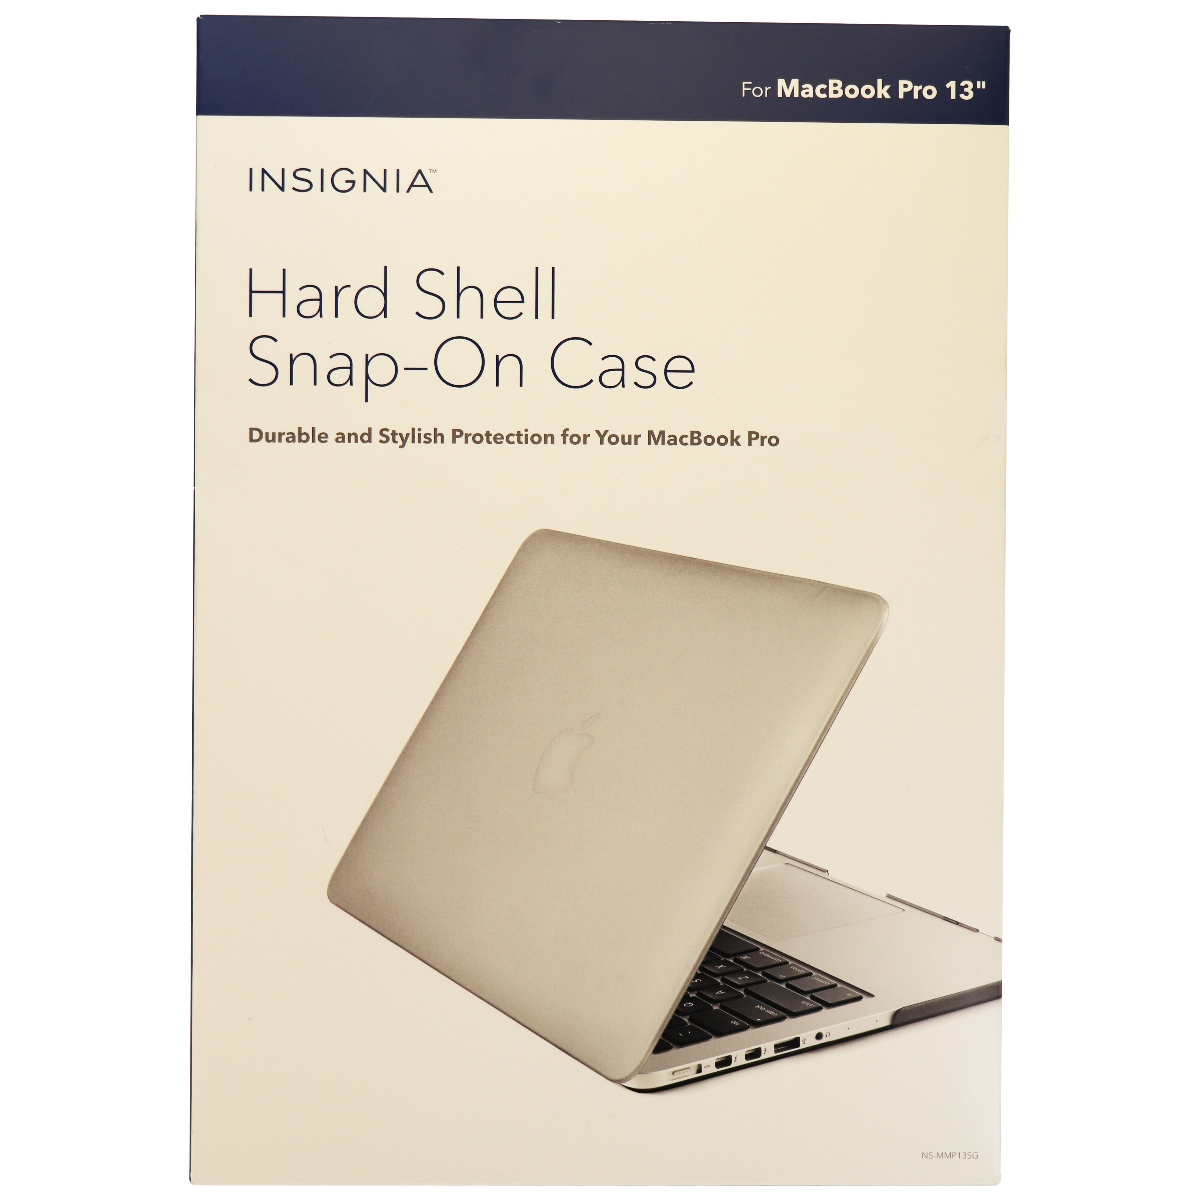 Insignia Hard Shell Snap-On Case for Apple MacBook Pro 13 inch - Gray